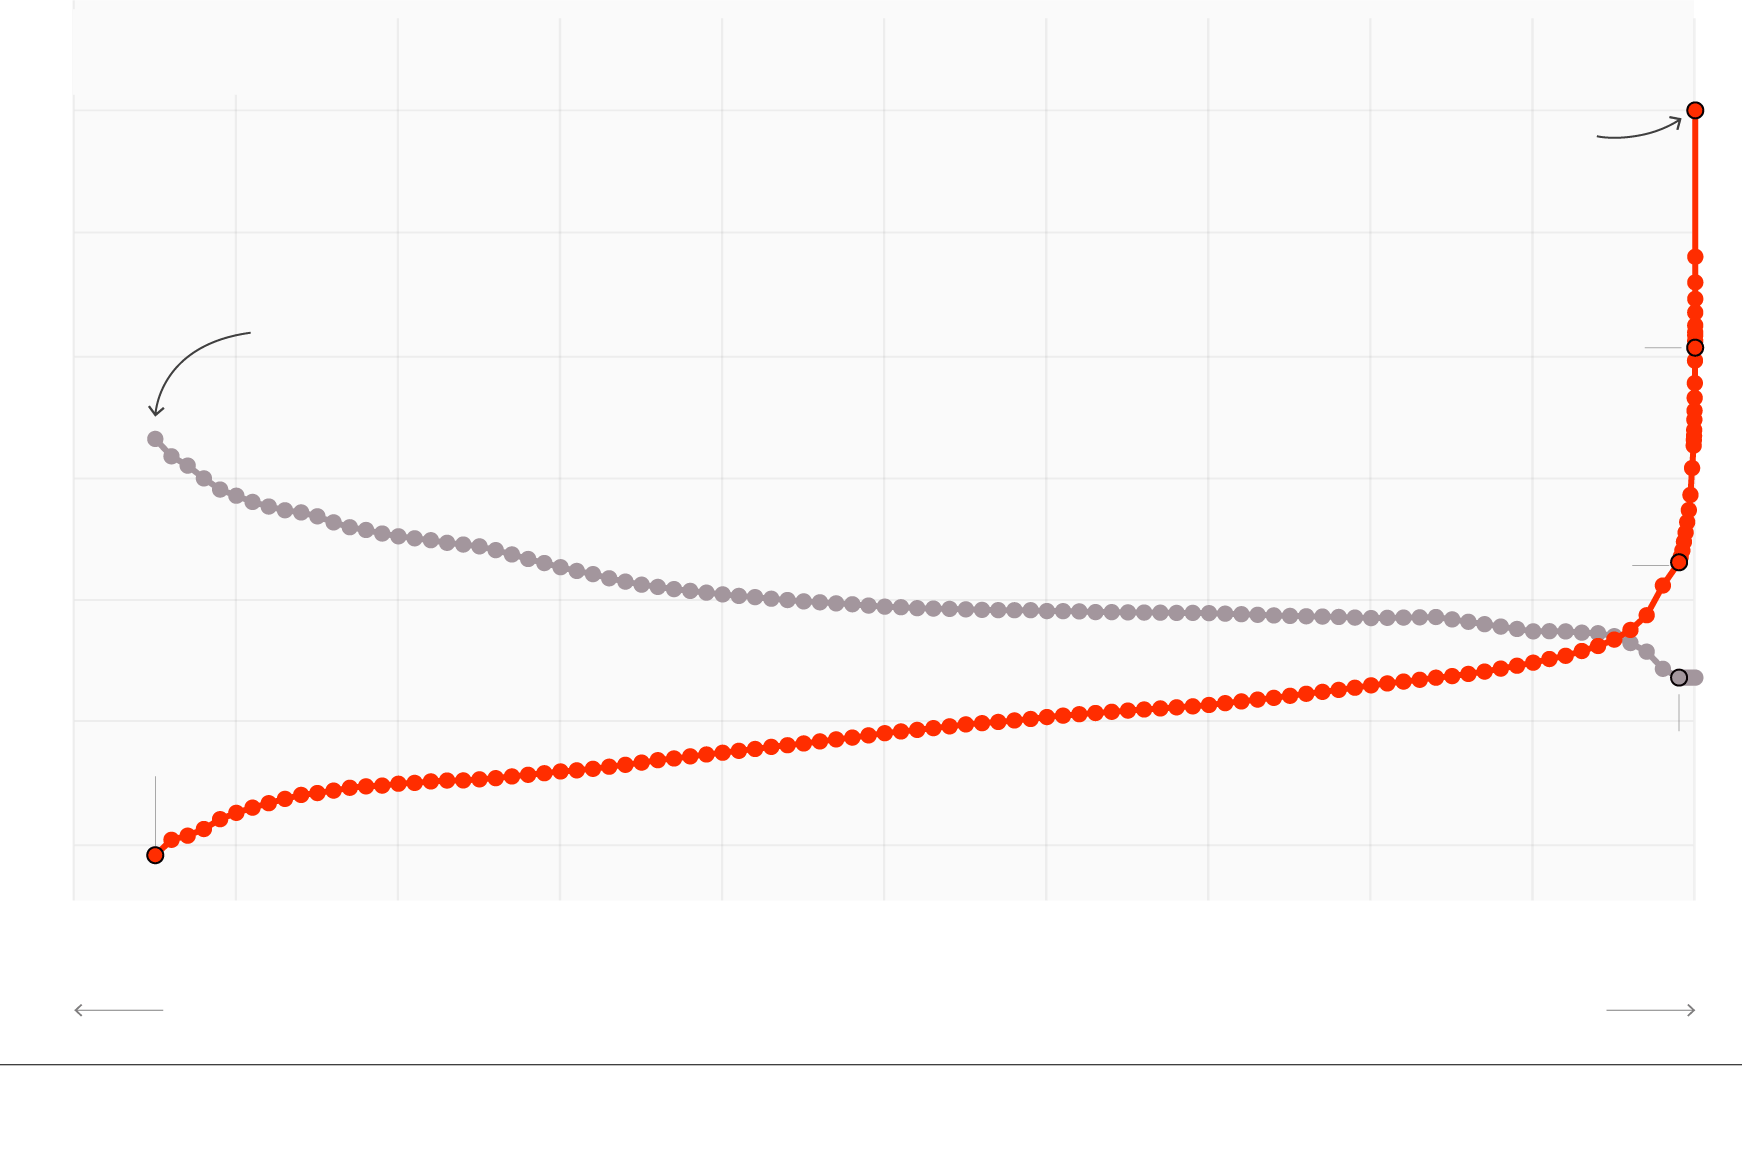 Opinion Our Broken Economy In One Simple Chart Chart Charts And Graphs Inequality